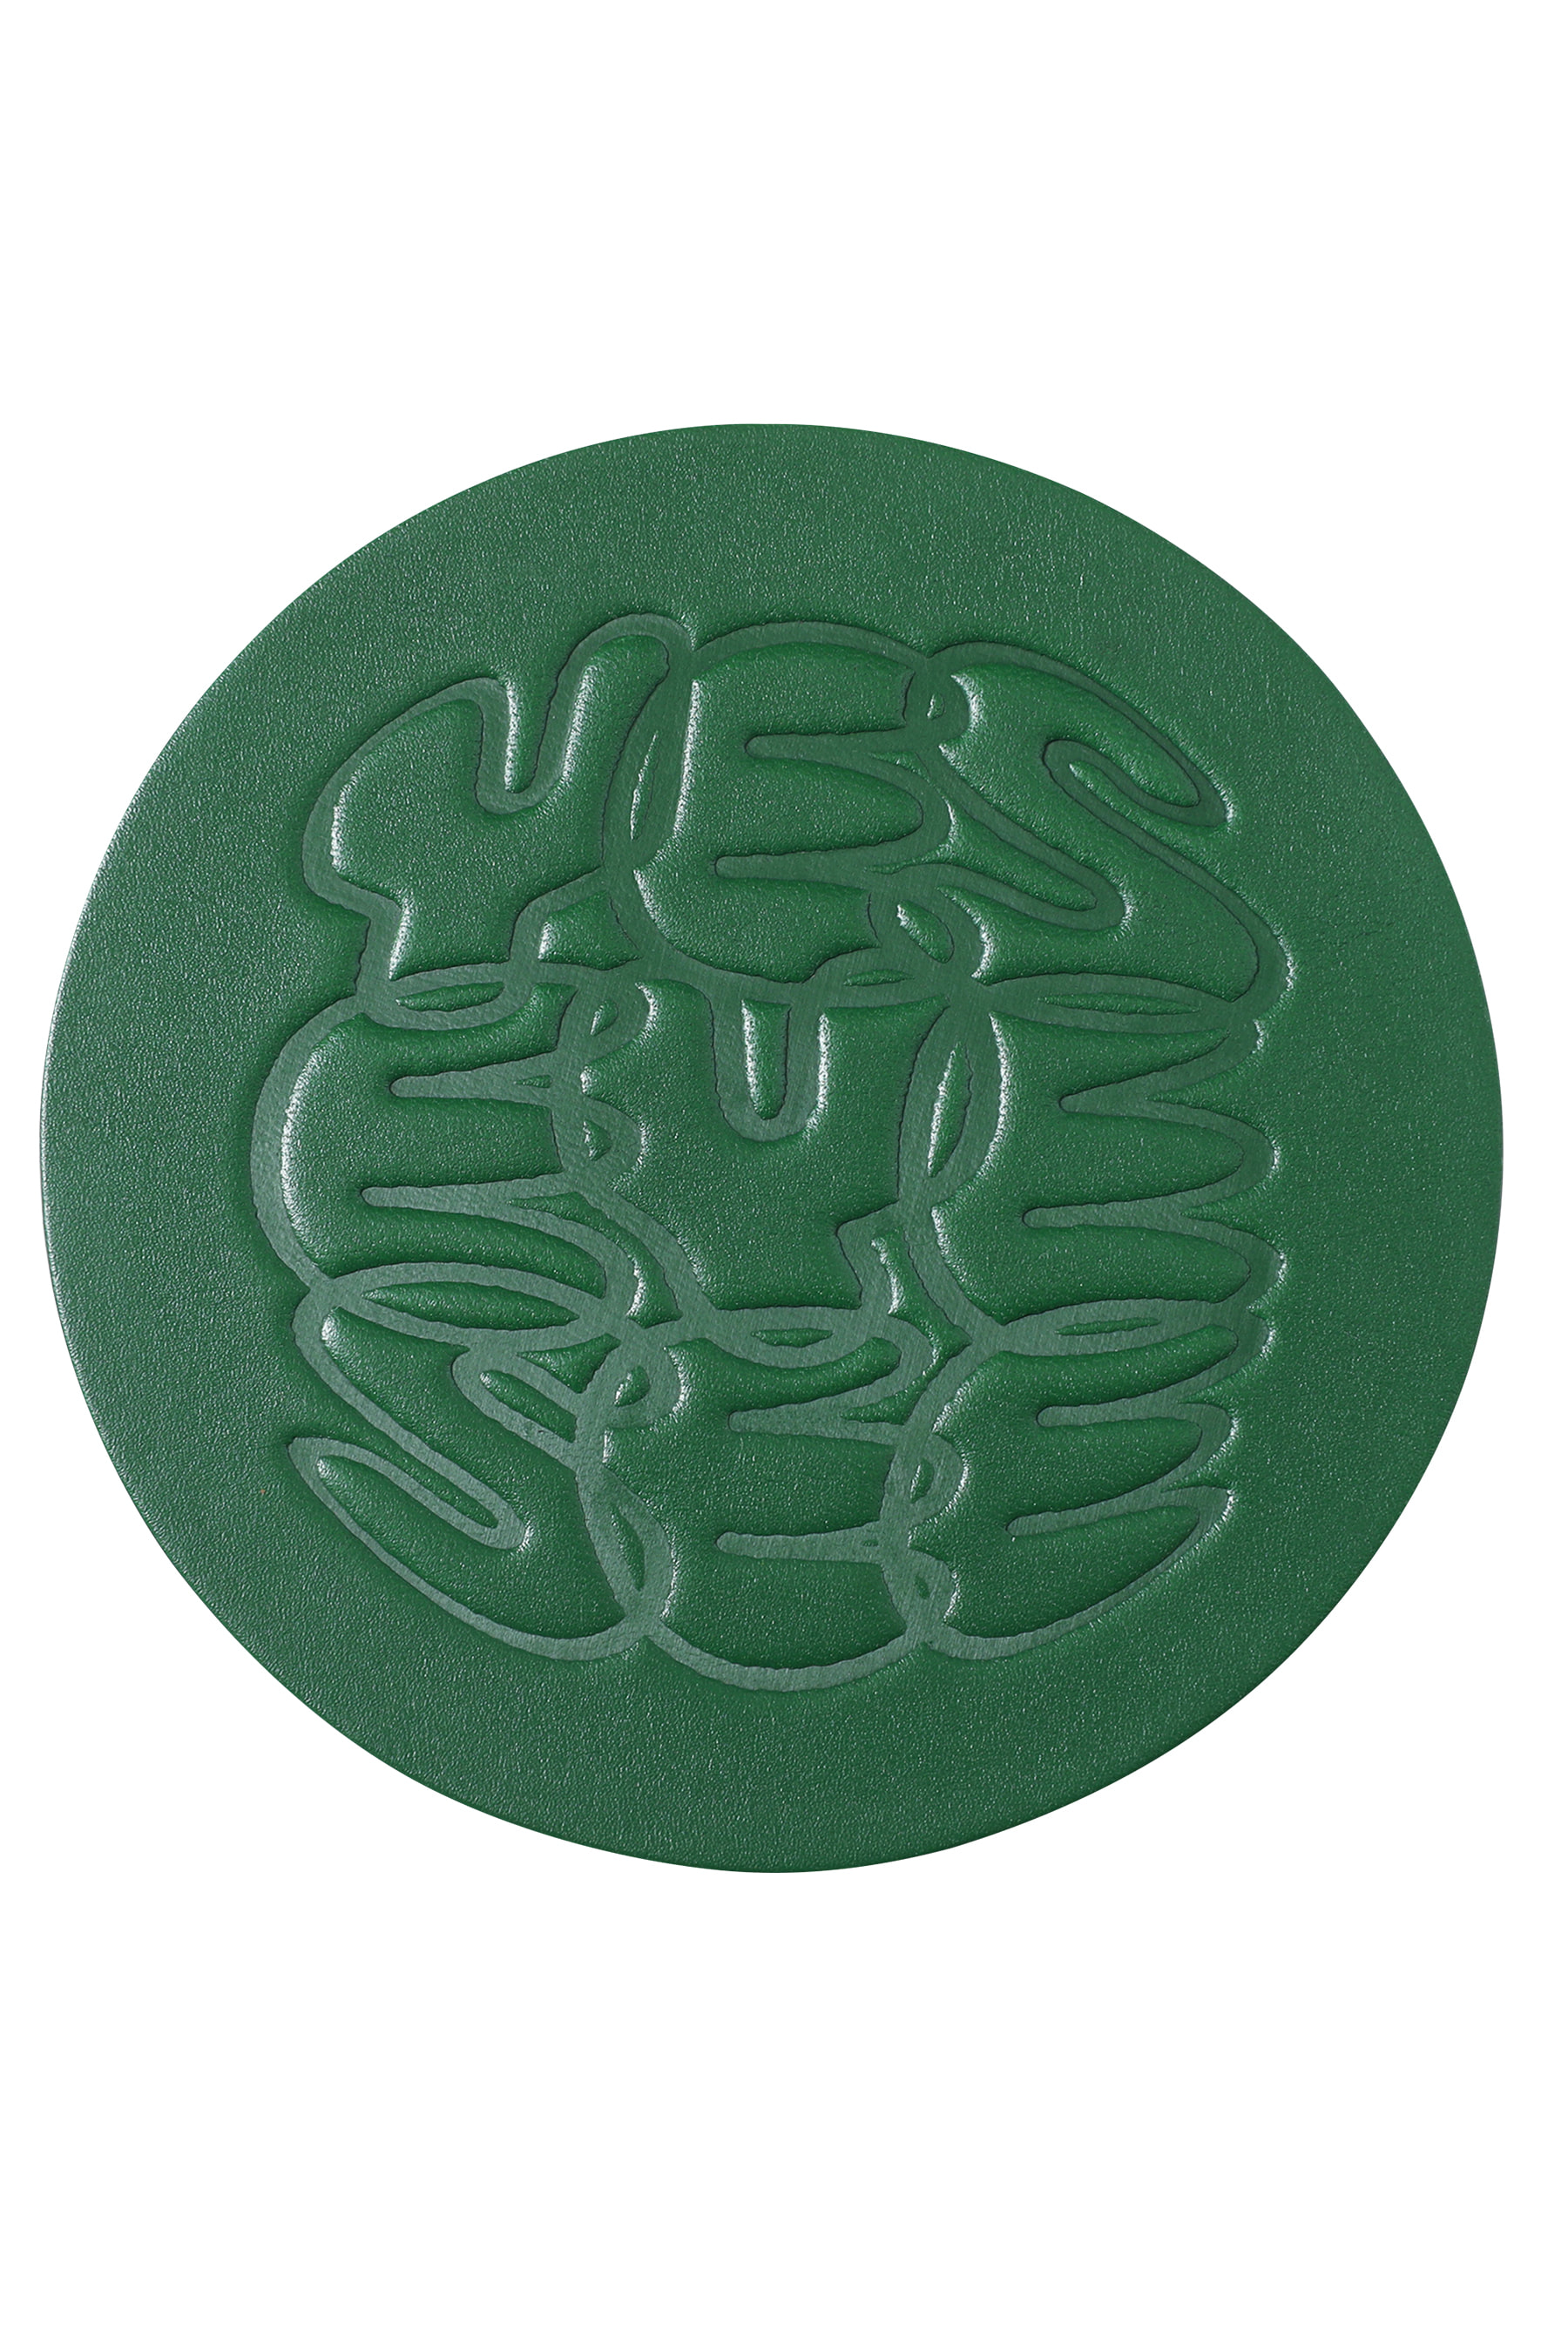 Y.E.S Leather Coaster Green